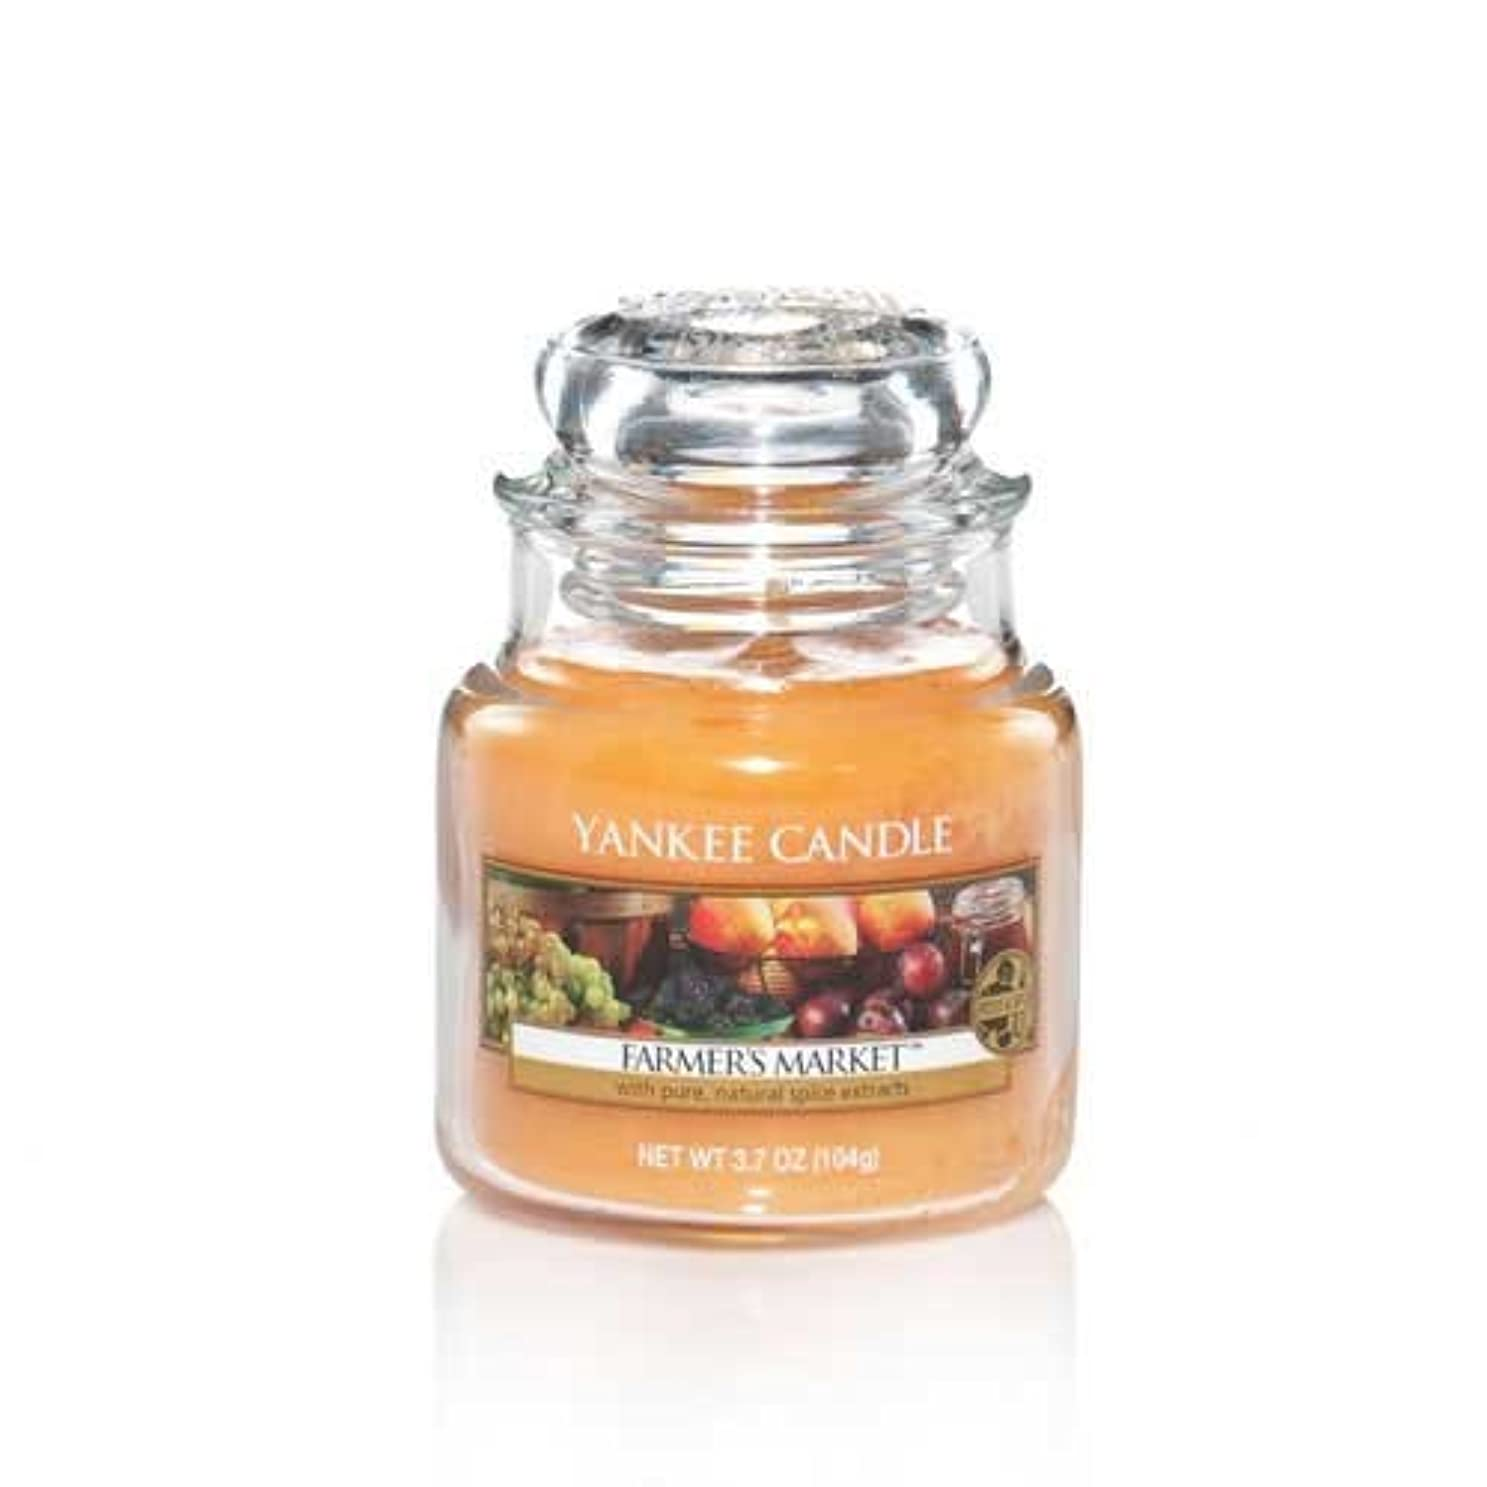 最も早いフォームマダムYankee Candle Farmer 's Market Small Jar Candle, Food & Spice香り